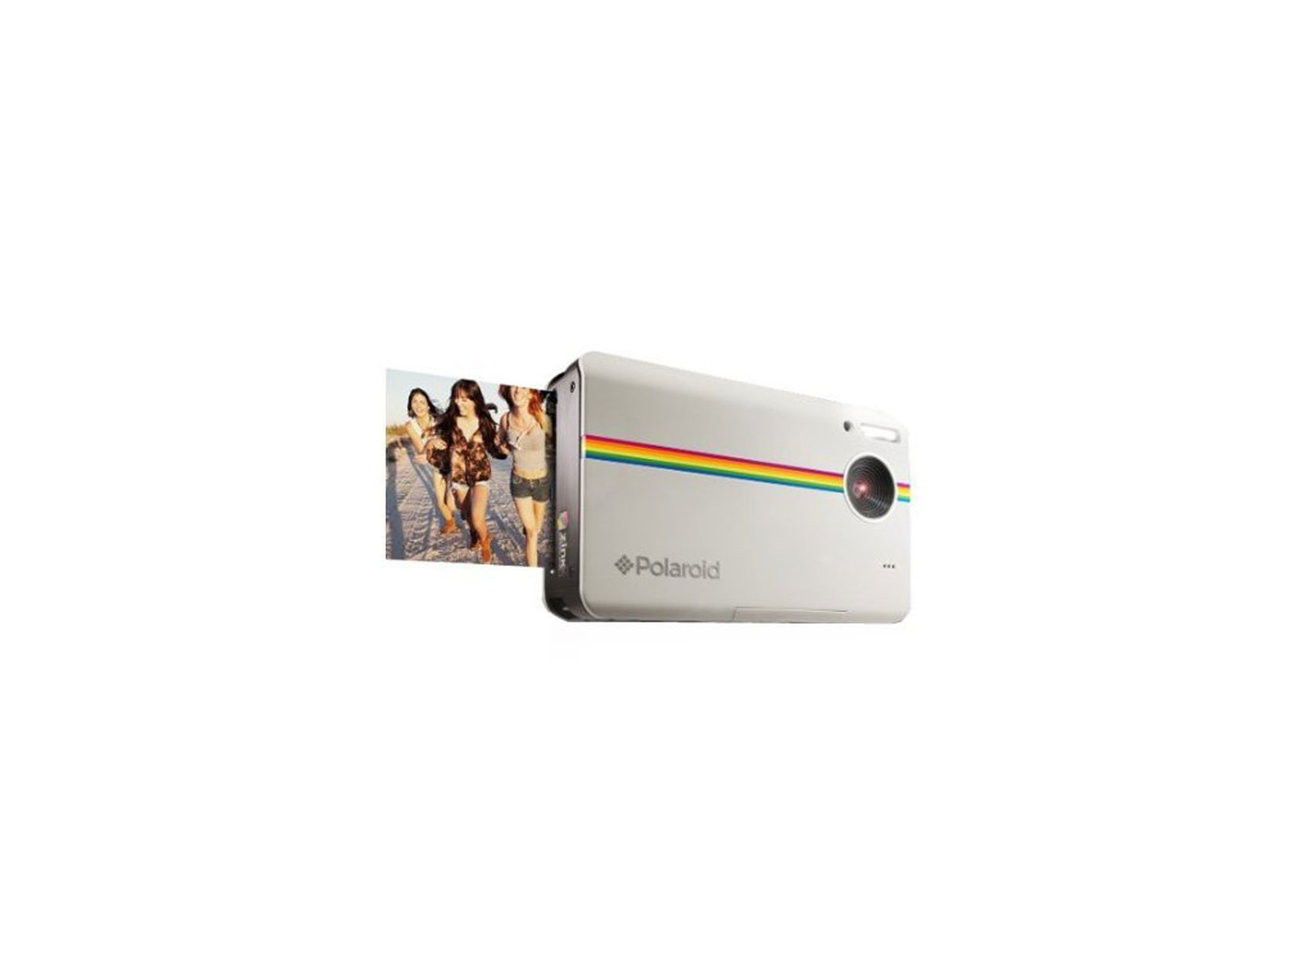 Polaroid-Camera-amazon-prime-BESTSHOP1215.jpg